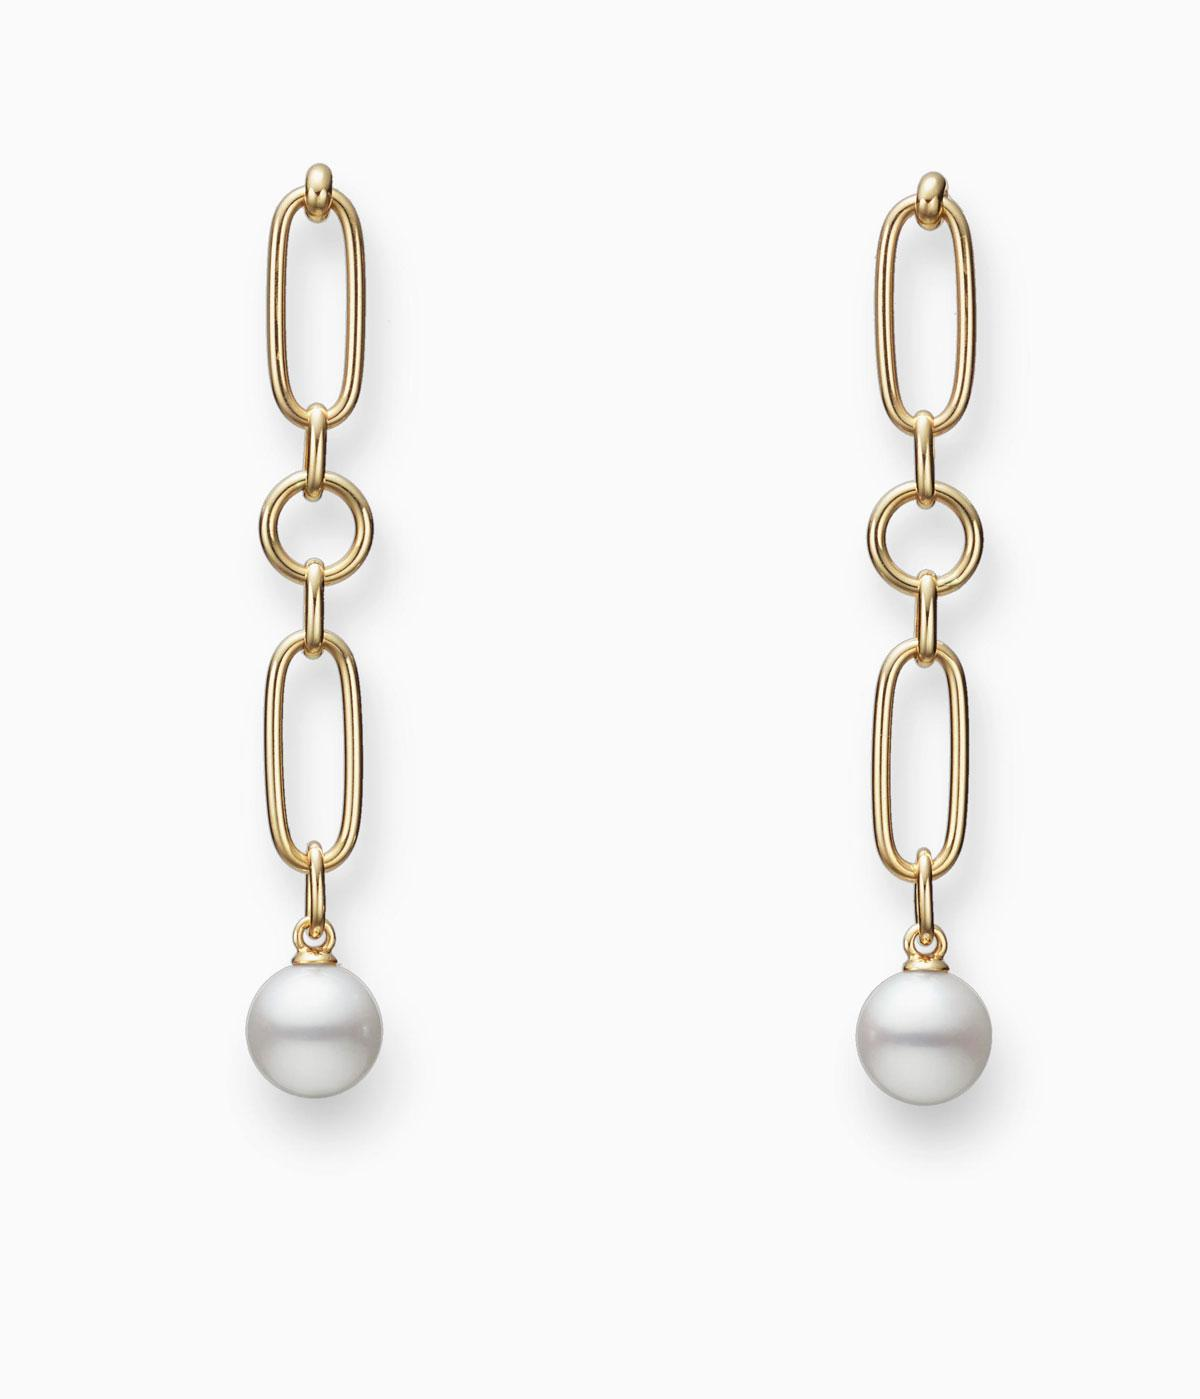 Mikimoto pearl and gold chain earrings